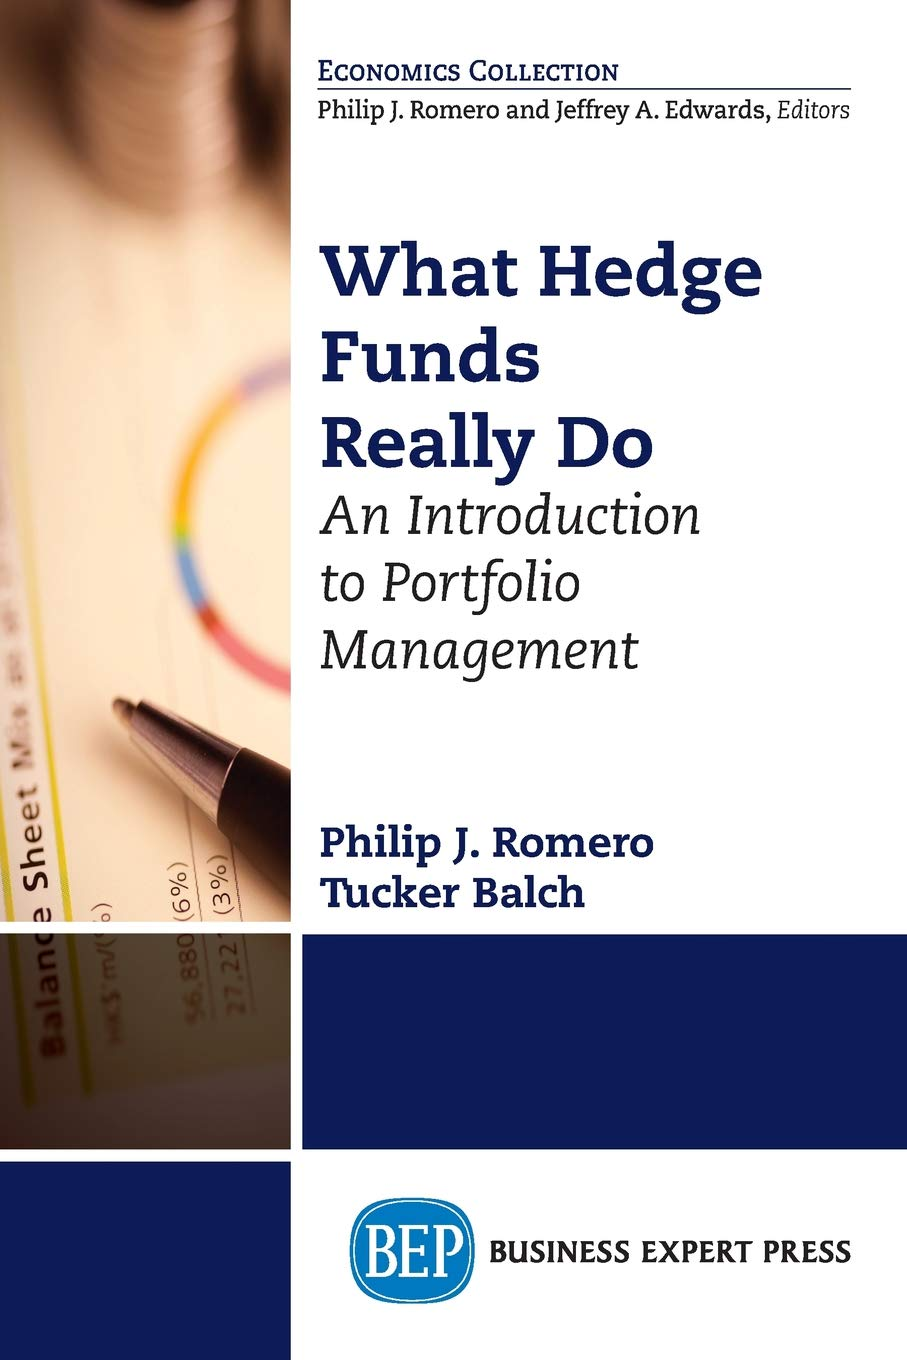 What Hedge Funds Really Do: An Introduction to Portfolio